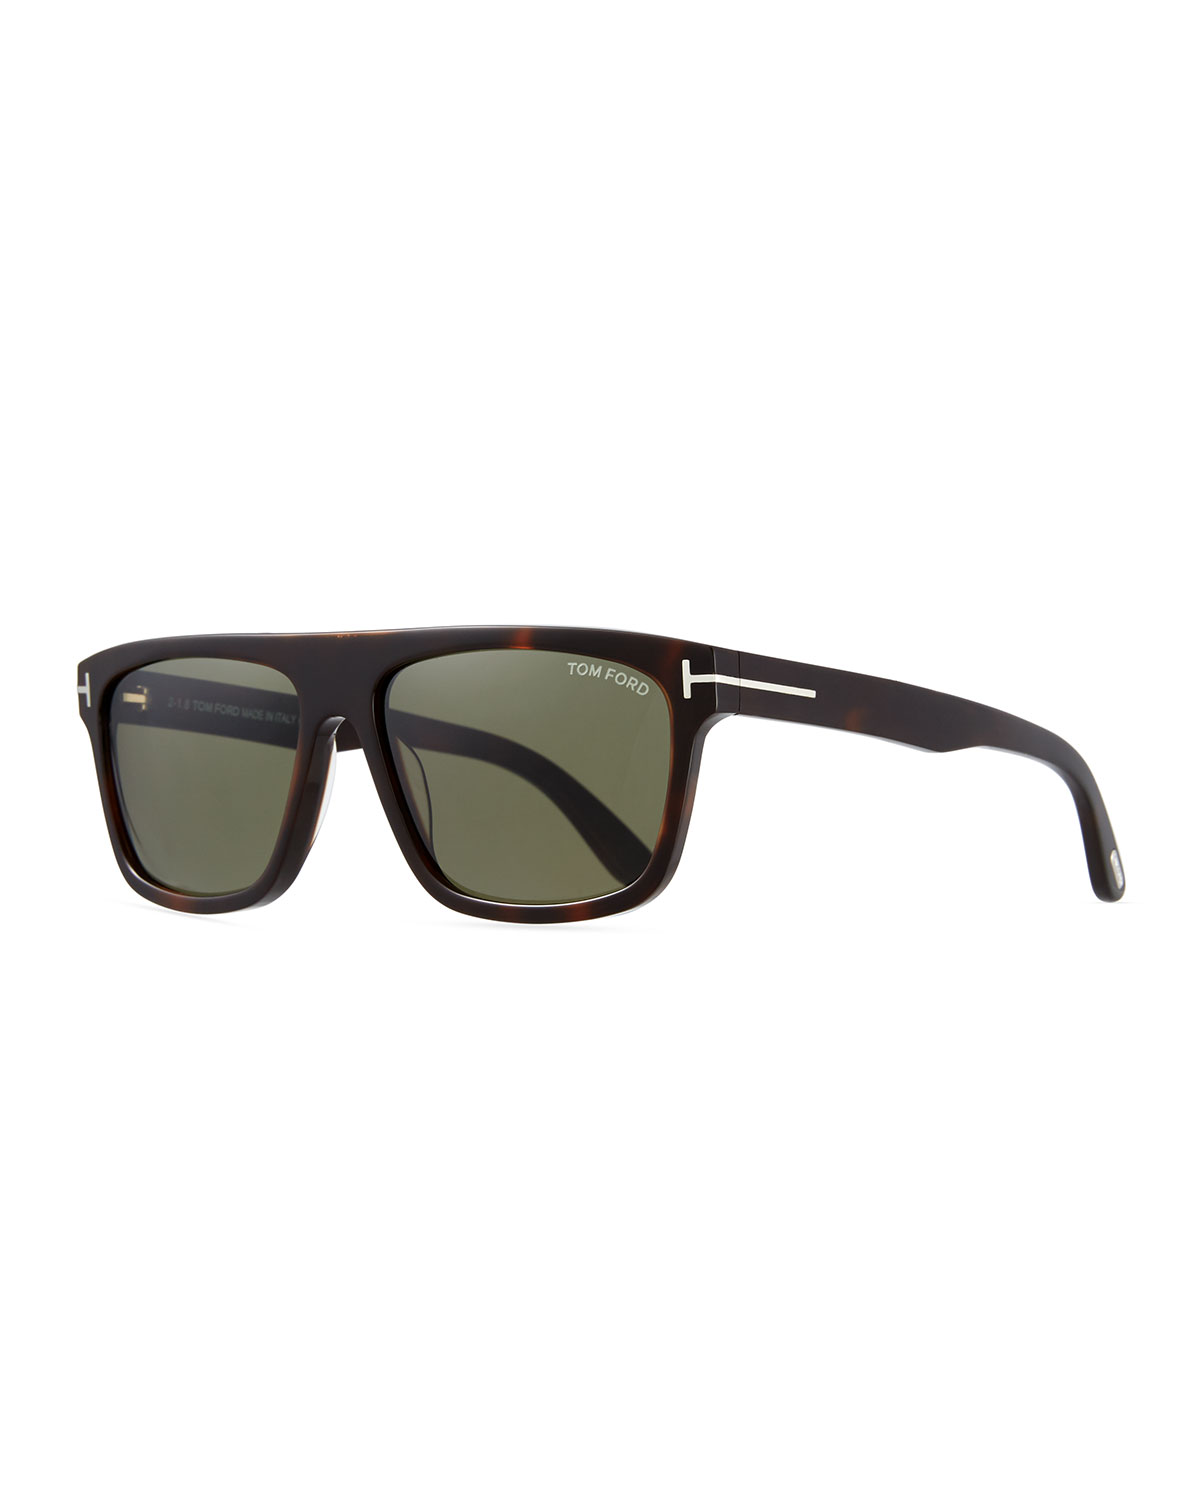 5566647246f2 TOM FORD Men s Thick Square Acetate Sunglasses